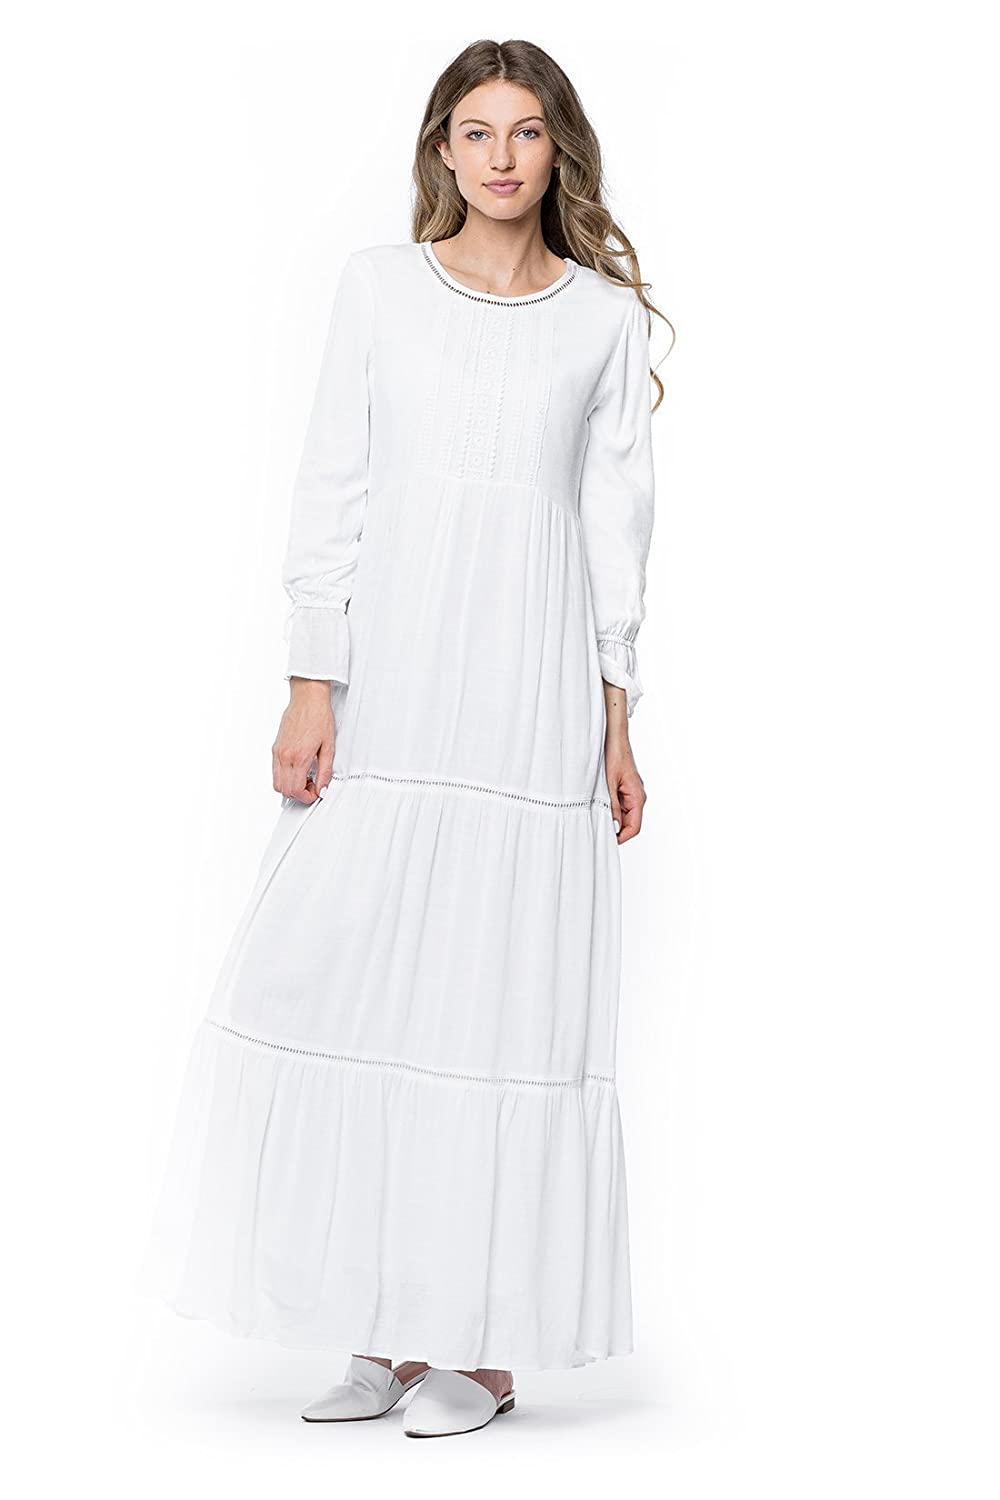 Cottagecore Clothing, Soft Aesthetic ModWhite White Camellia Dress $94.00 AT vintagedancer.com